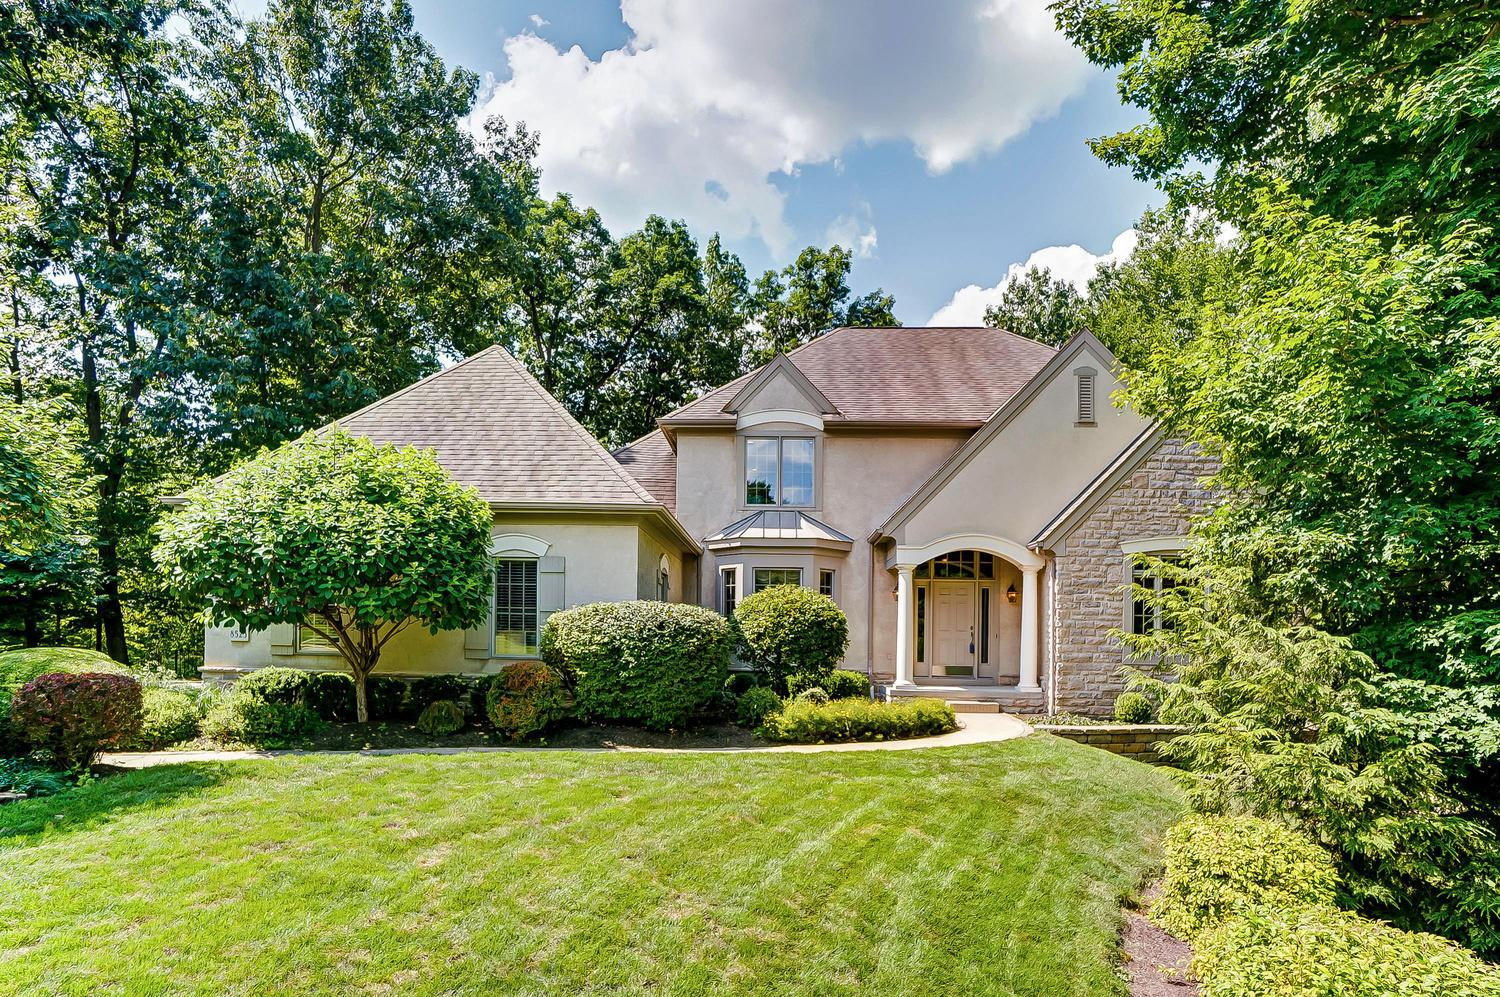 Photo of 8523 Misty Woods Circle, Powell, OH 43065